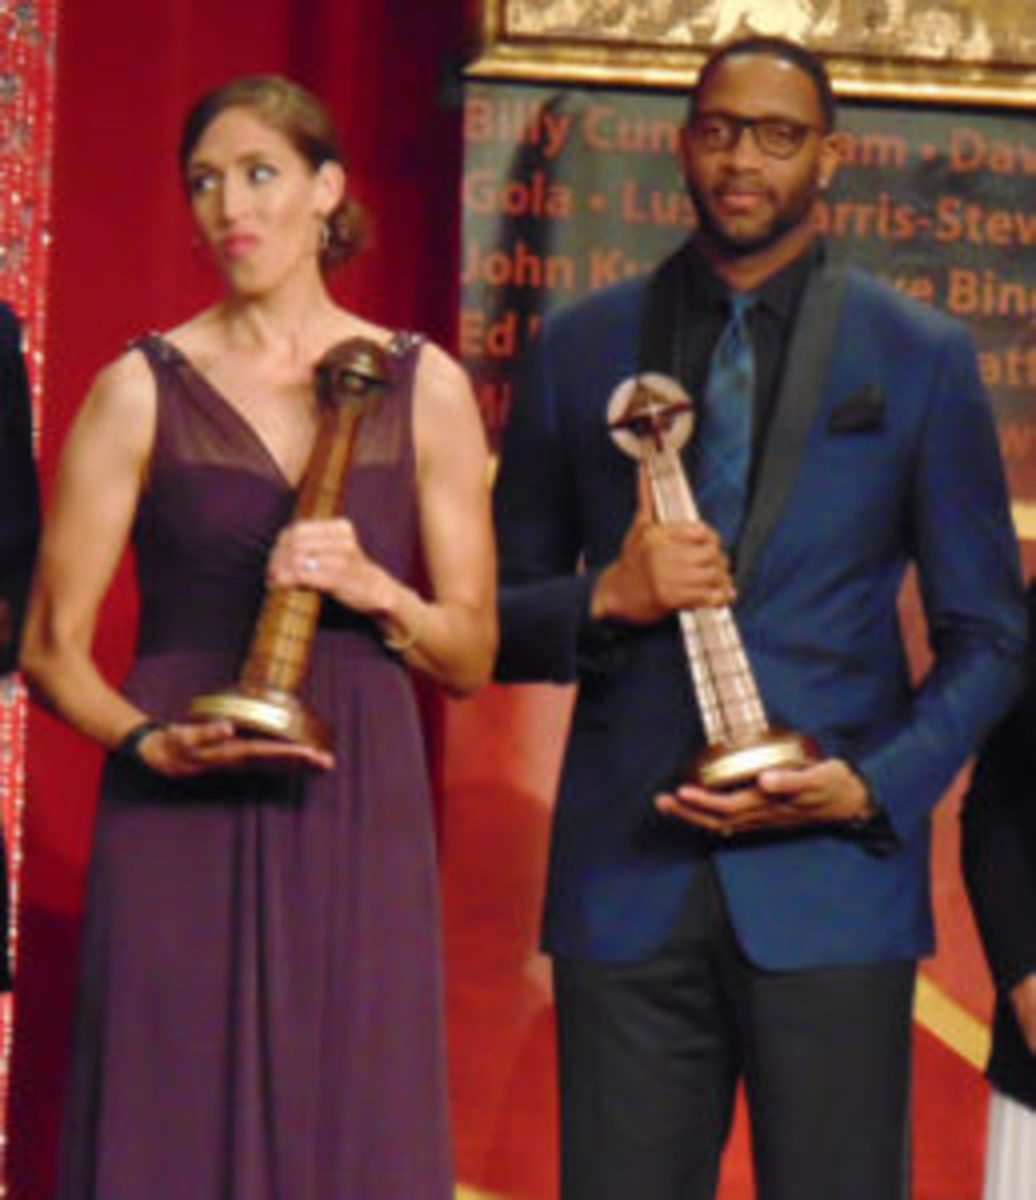 Rebecca Lobo (left) and Tracy McGrady (right) at the Naismith Basketball Hall of Fame Induction ceremony. (Robert Kunz photos)